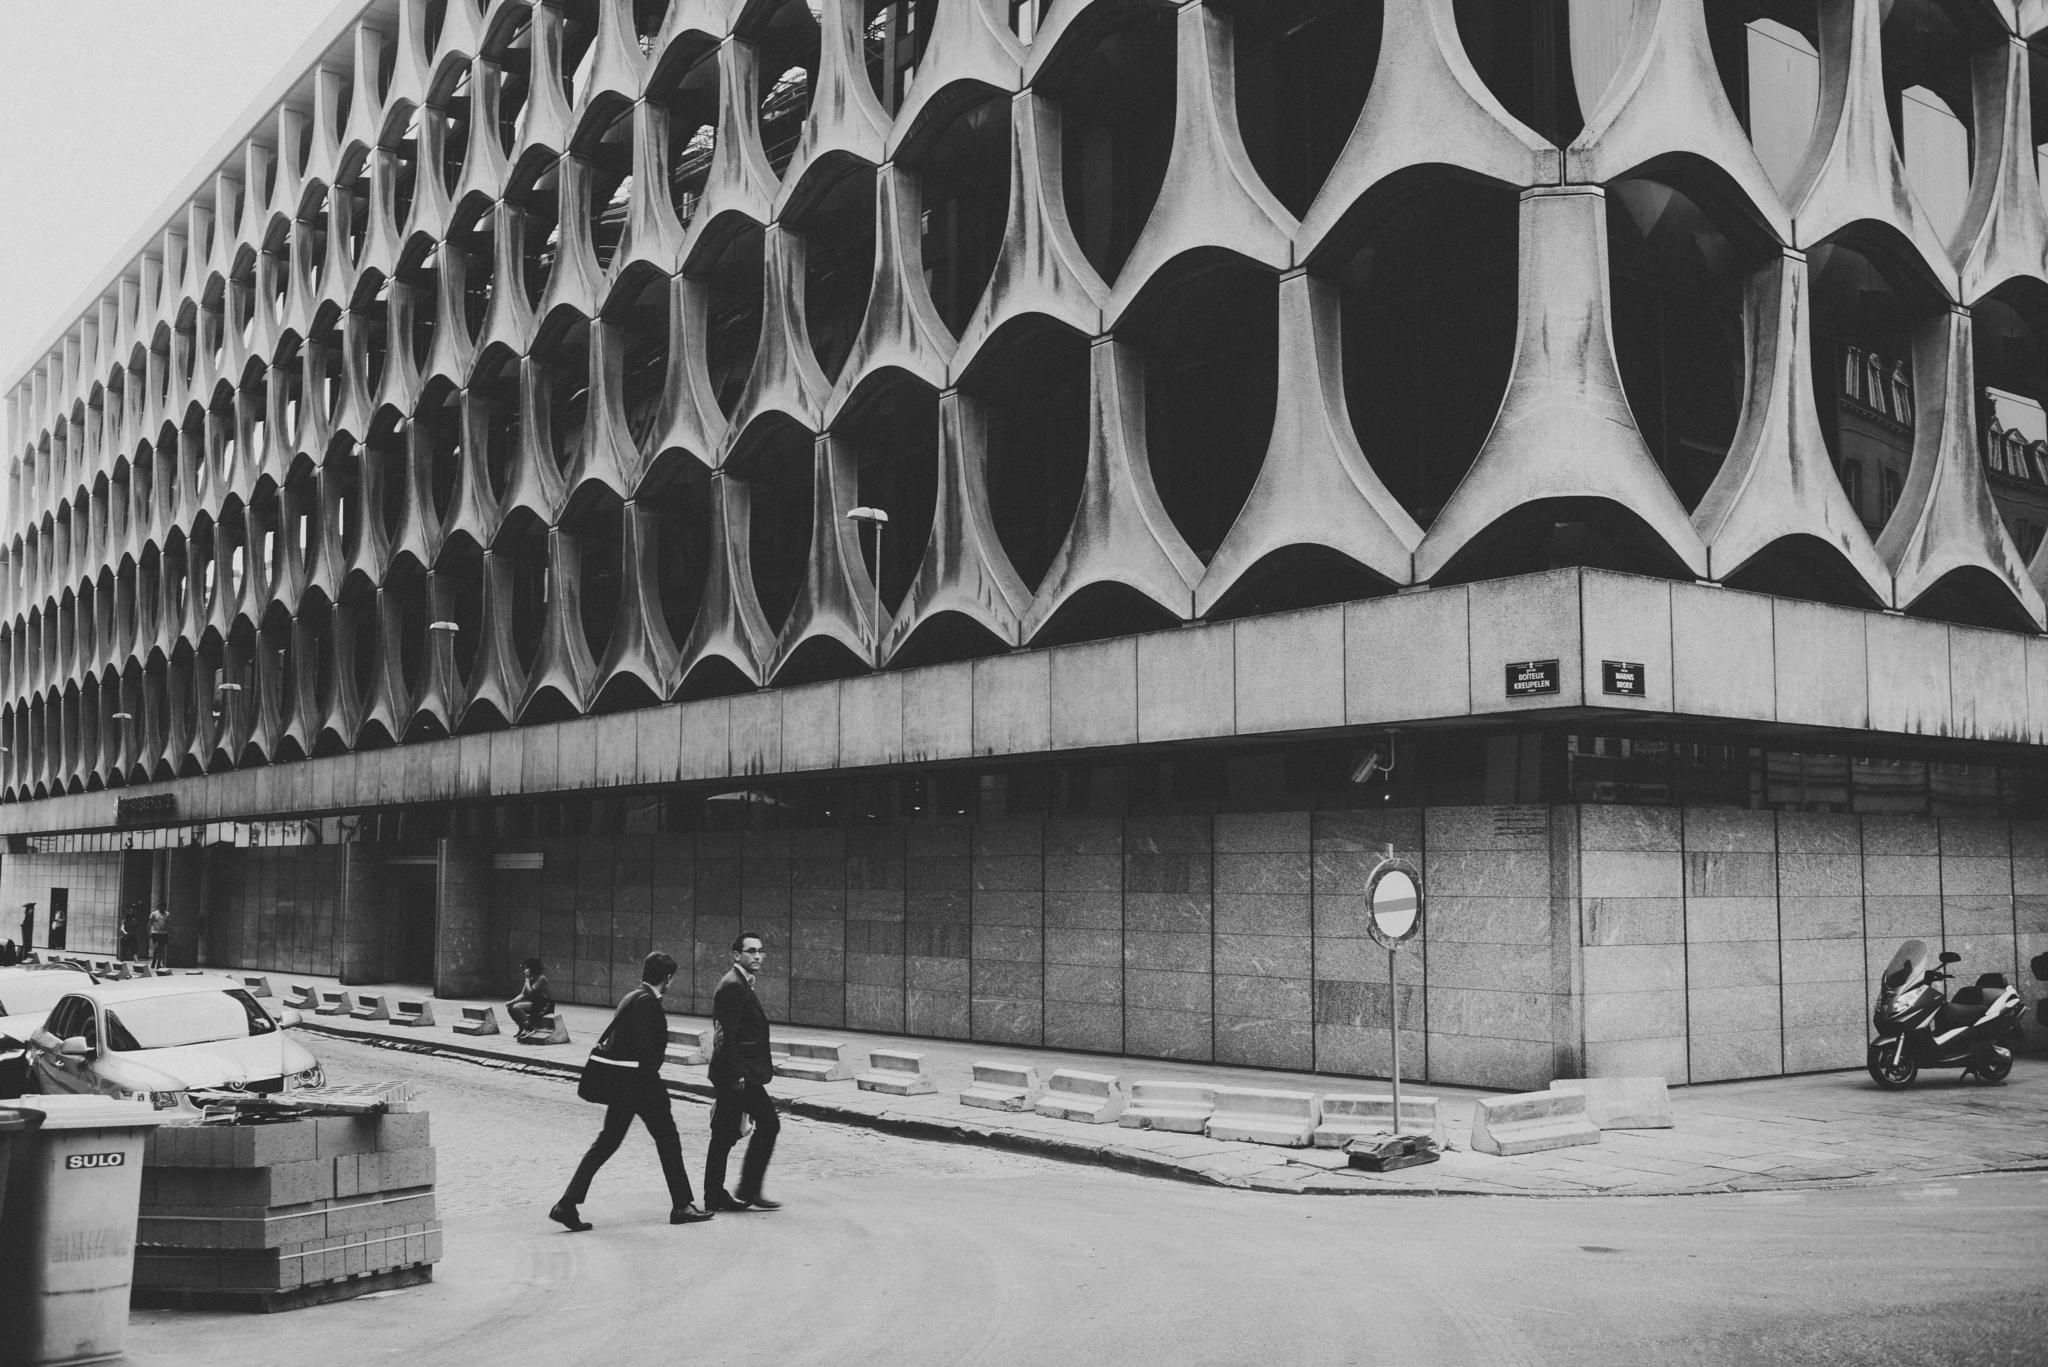 Man and architecture: a monumental relationship   by Matthias Ripp